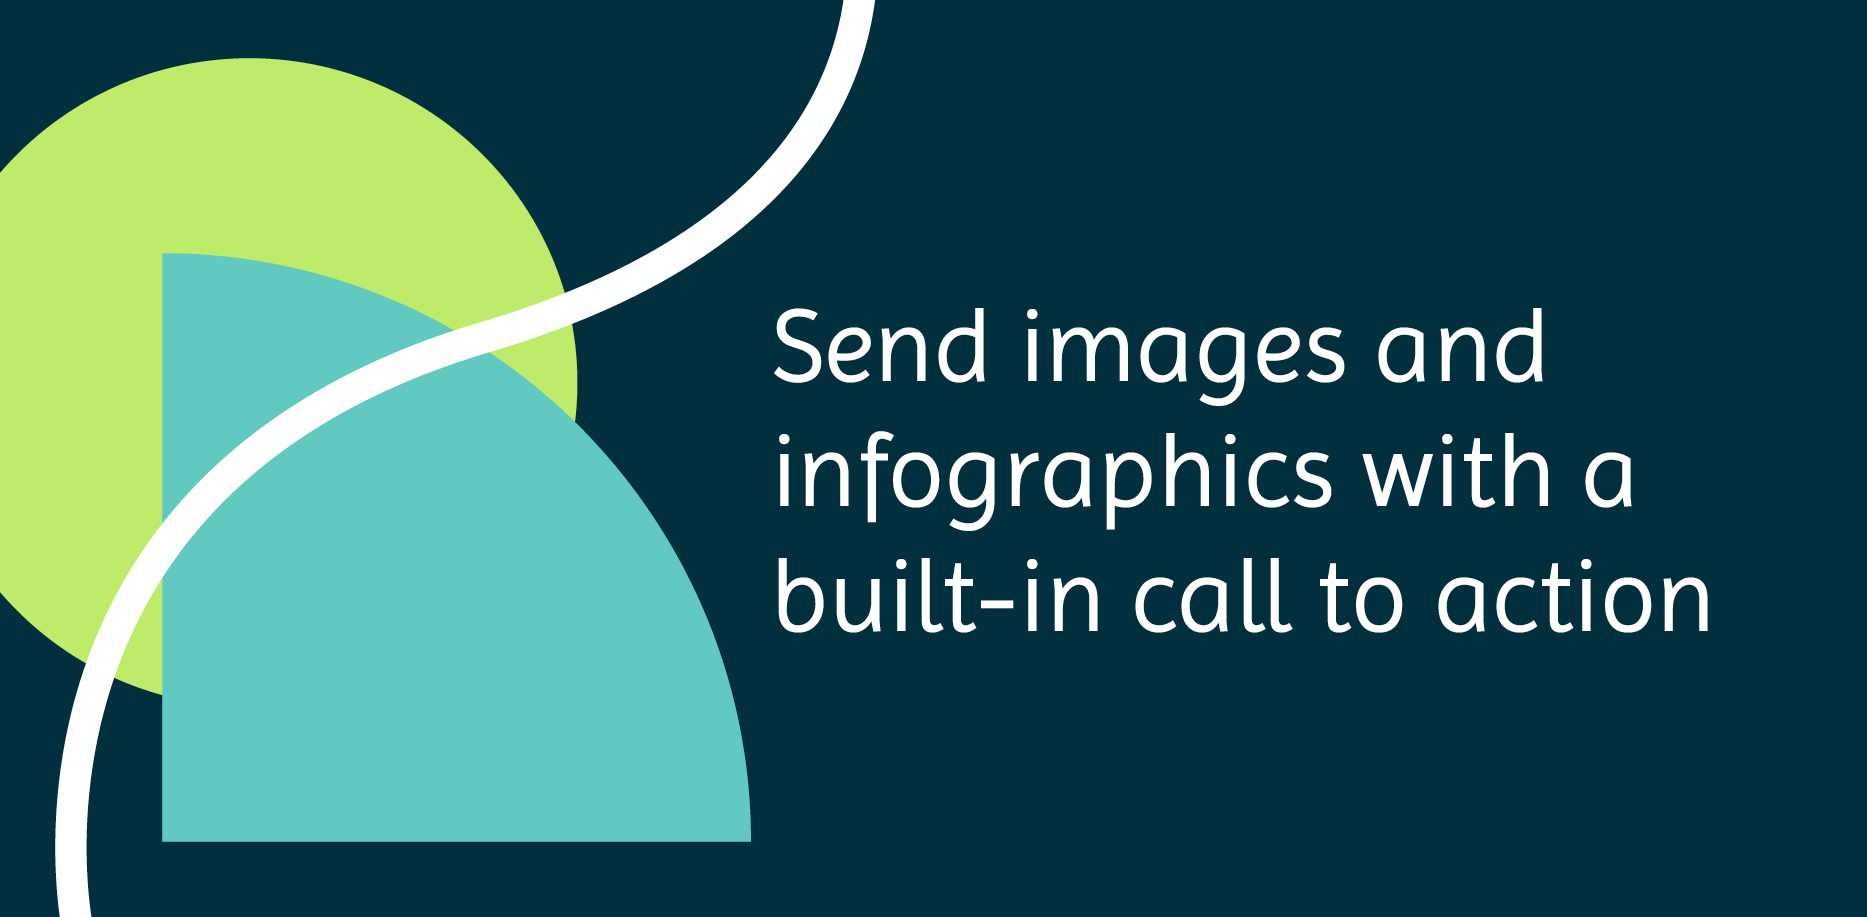 Send images and infographics with a built-in call to action